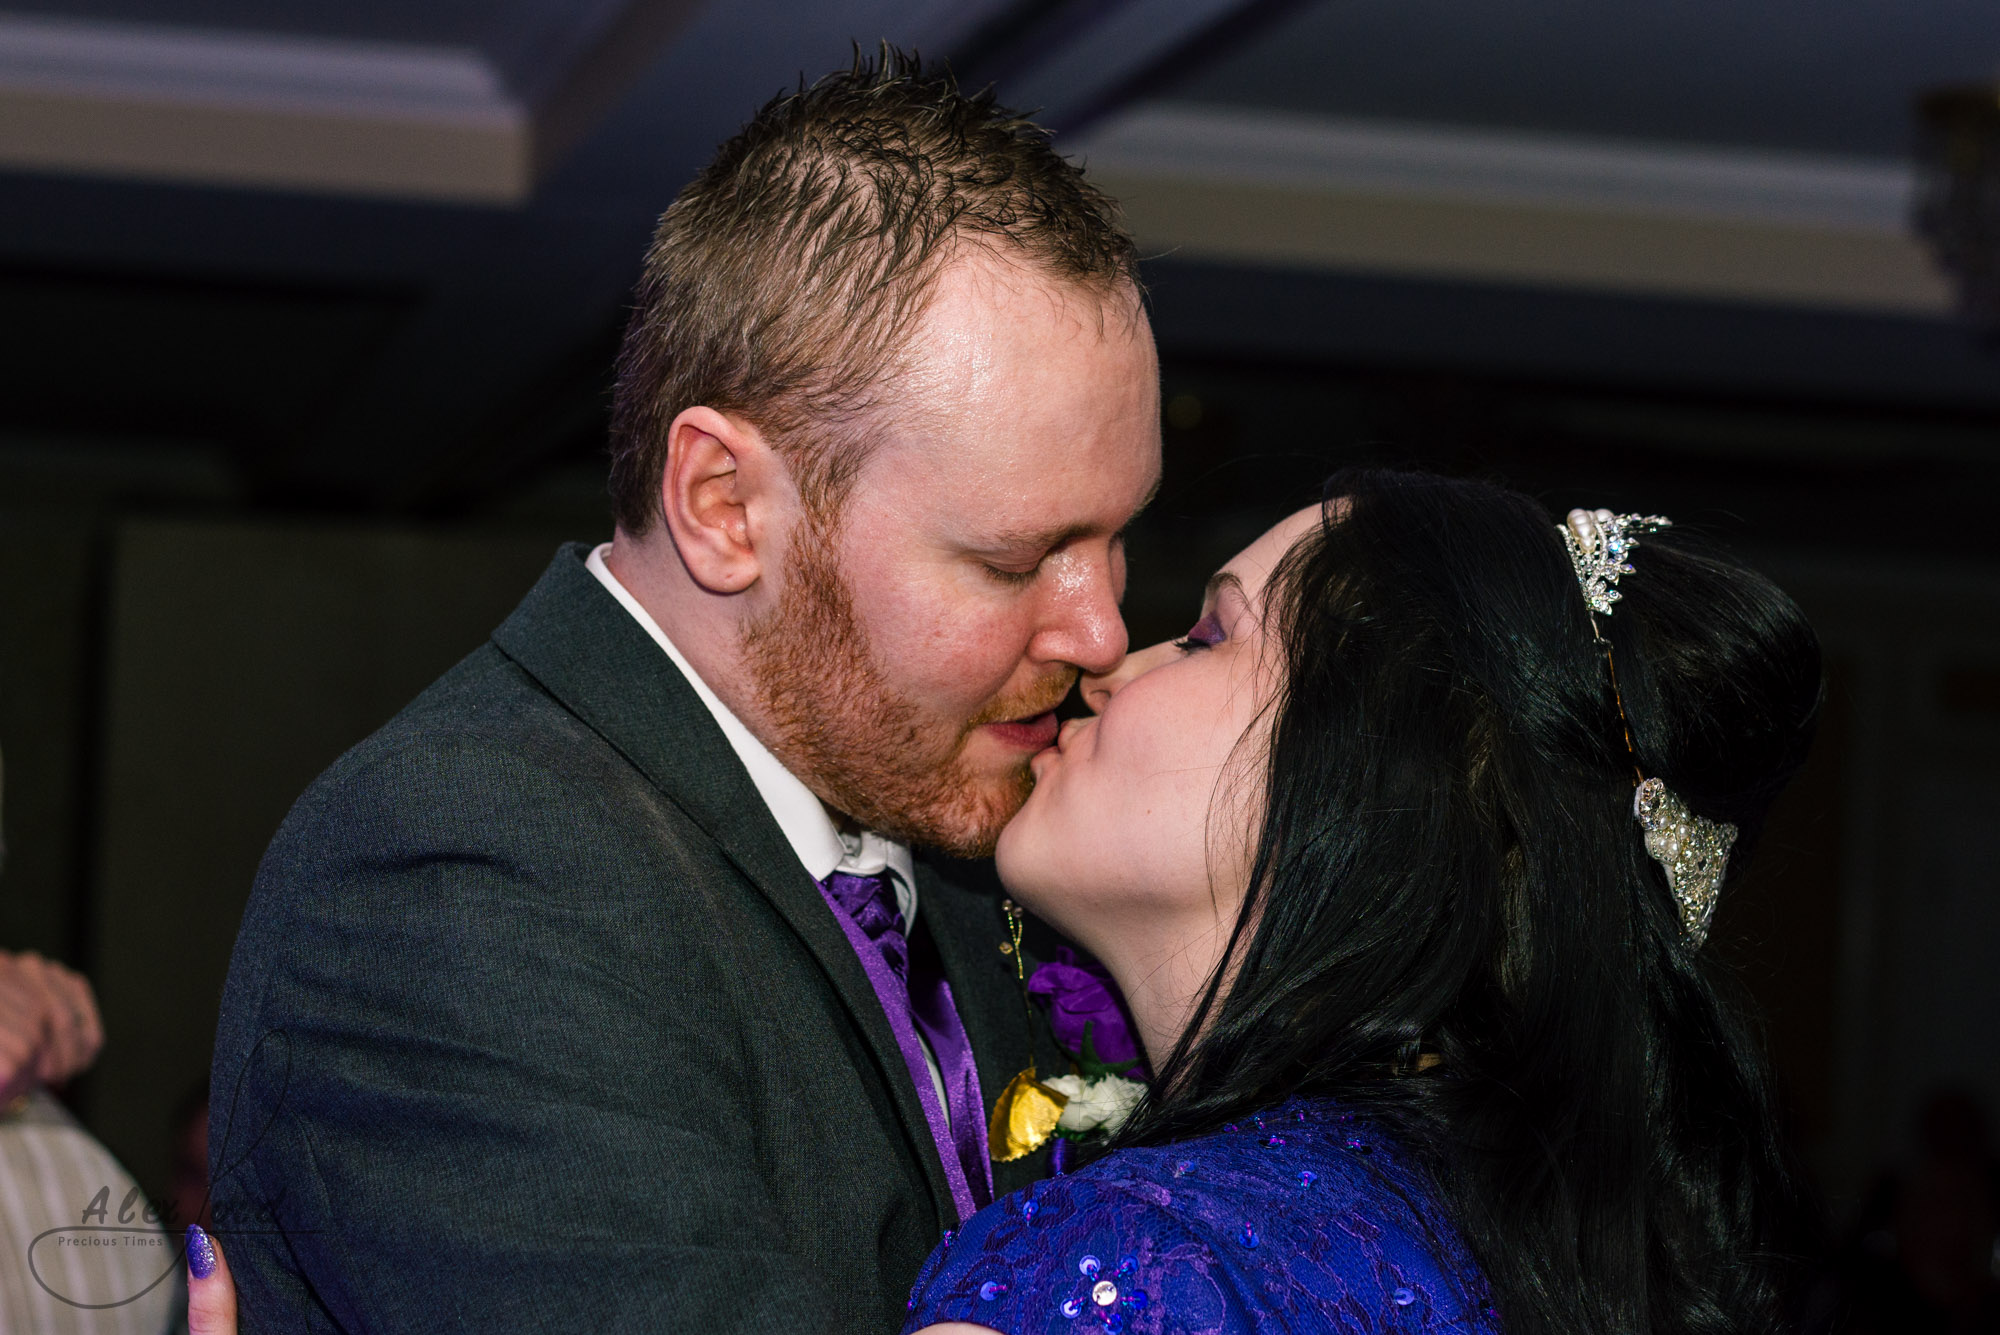 the bride and groom have a kiss during their first dance